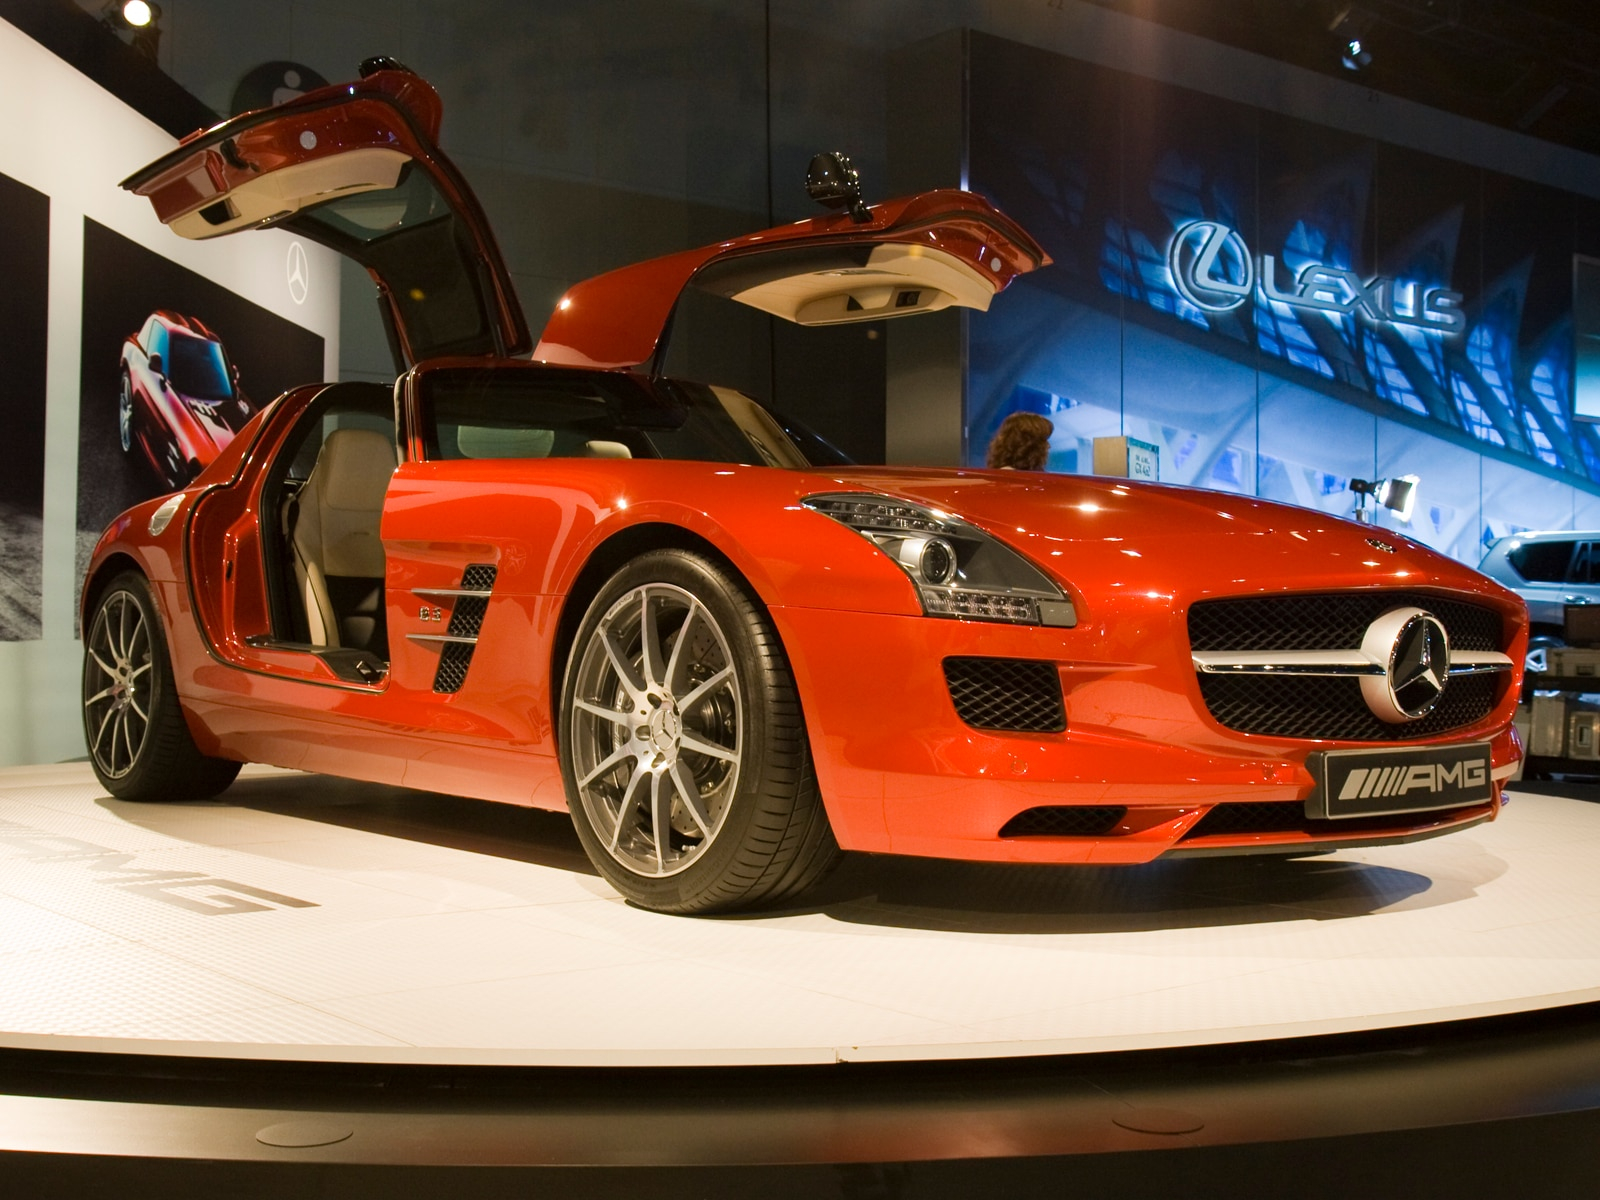 2011 mercedes benz sls amg mercedes benz sport coupe. Black Bedroom Furniture Sets. Home Design Ideas